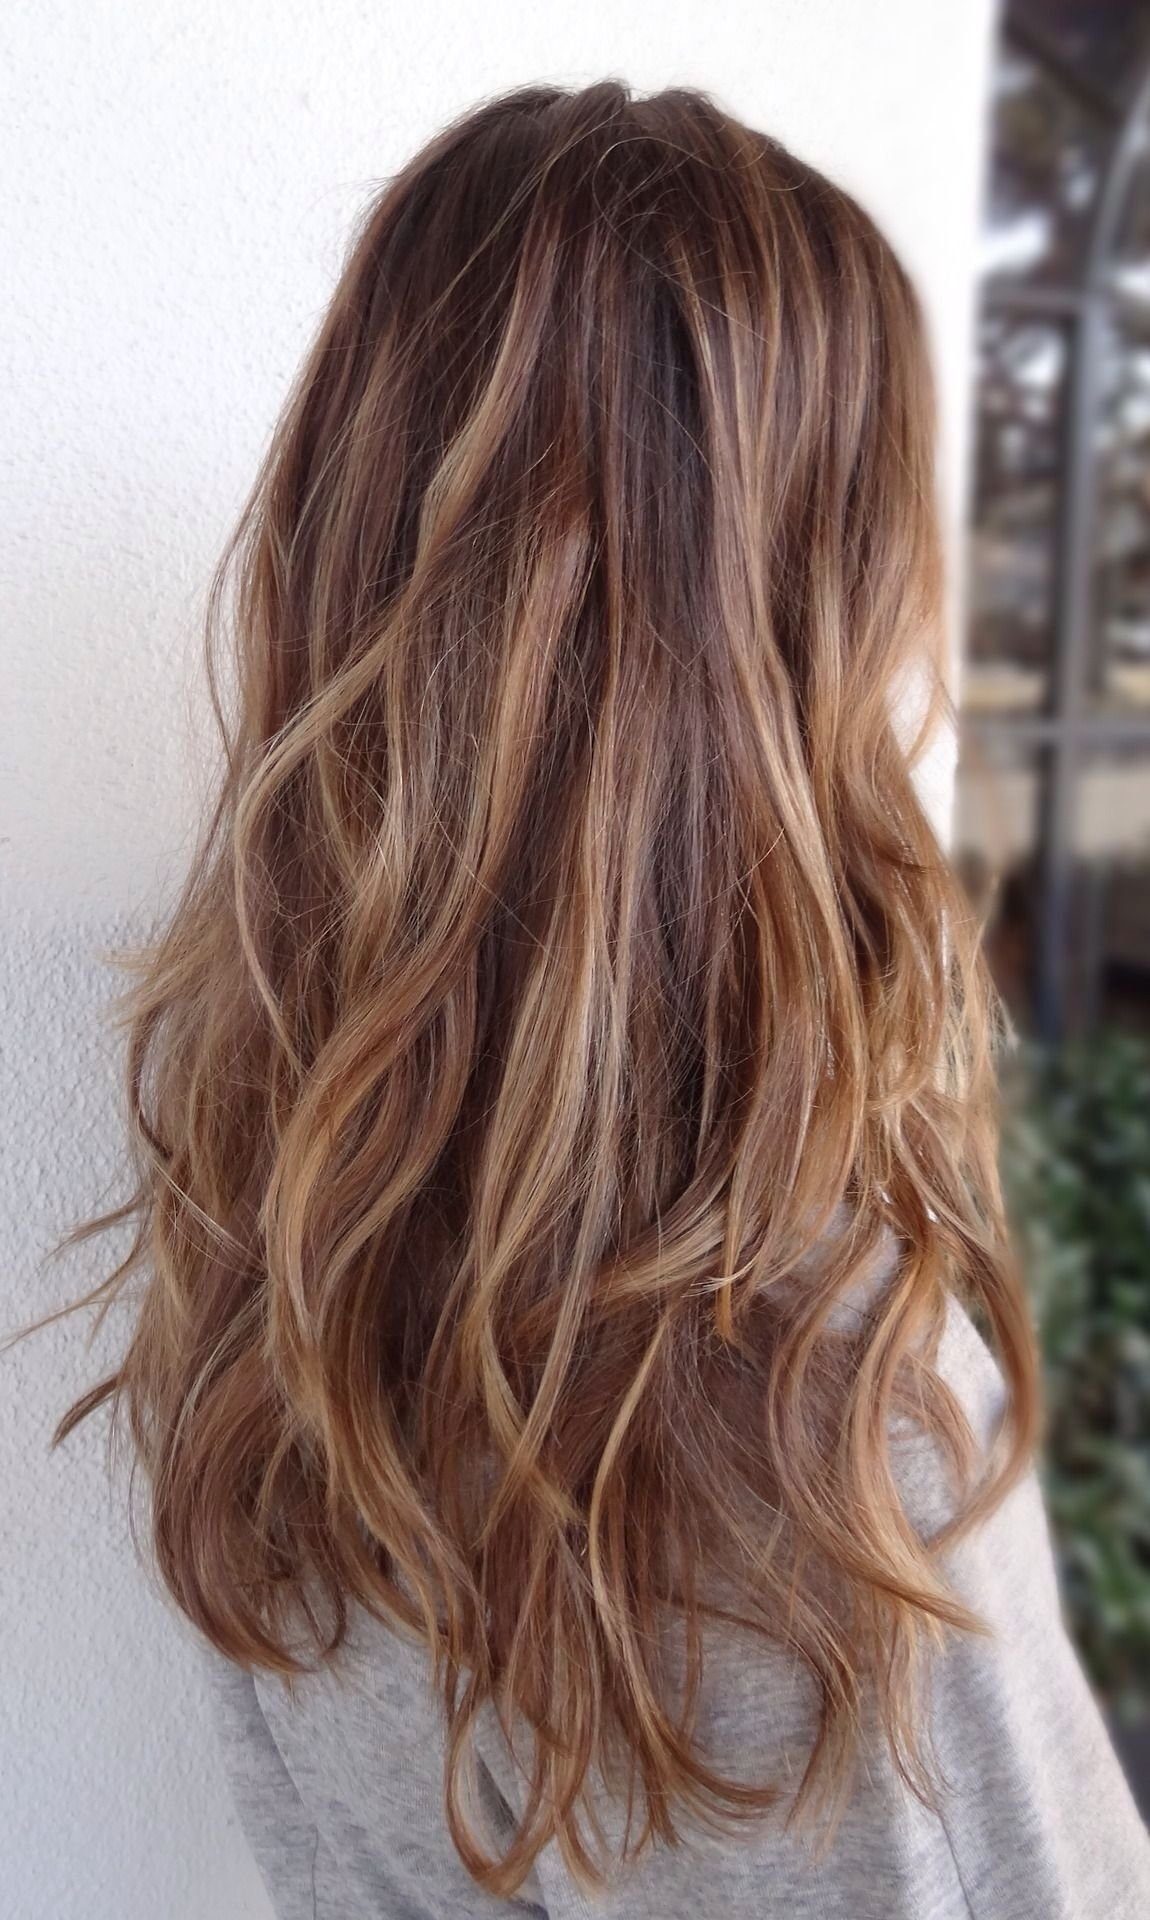 10 Amazing Red Blonde Brown Hair Color Ideas stunning est hair color ideas for brown red blonde brunette trends 2020